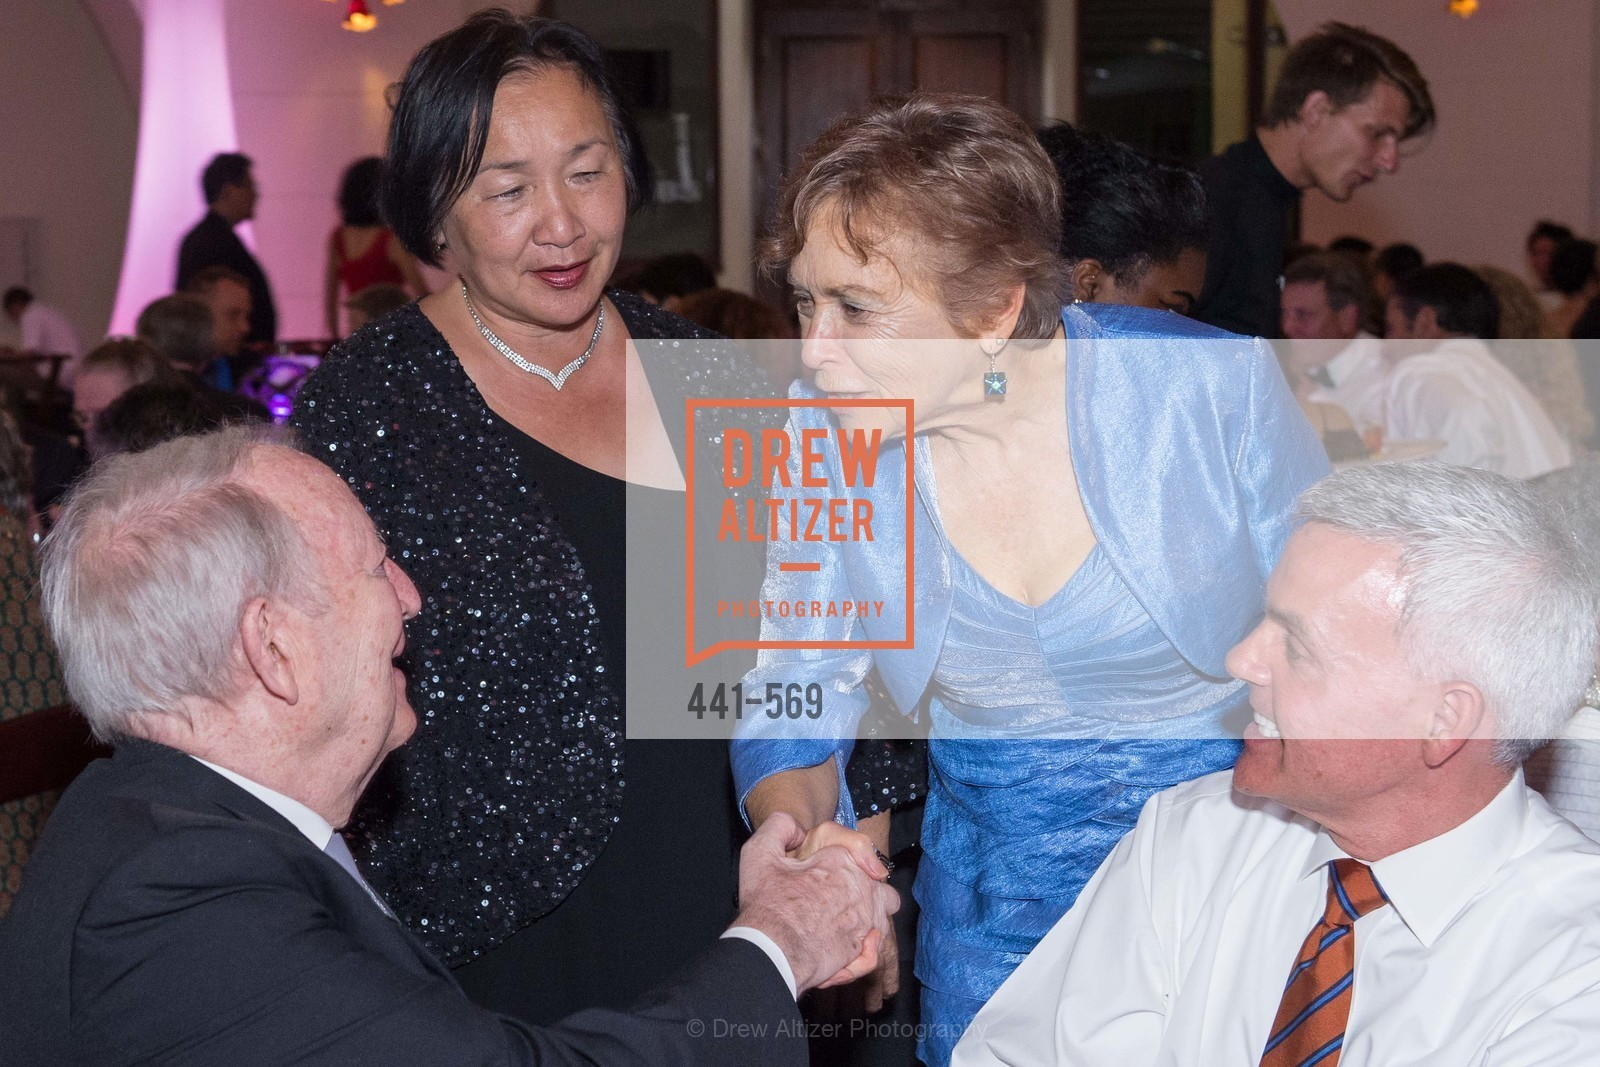 Jean Quan, Sheila Jordan, CHABOT Science Center STARLIGHT GALA, US, September 20th, 2014,Drew Altizer, Drew Altizer Photography, full-service agency, private events, San Francisco photographer, photographer california